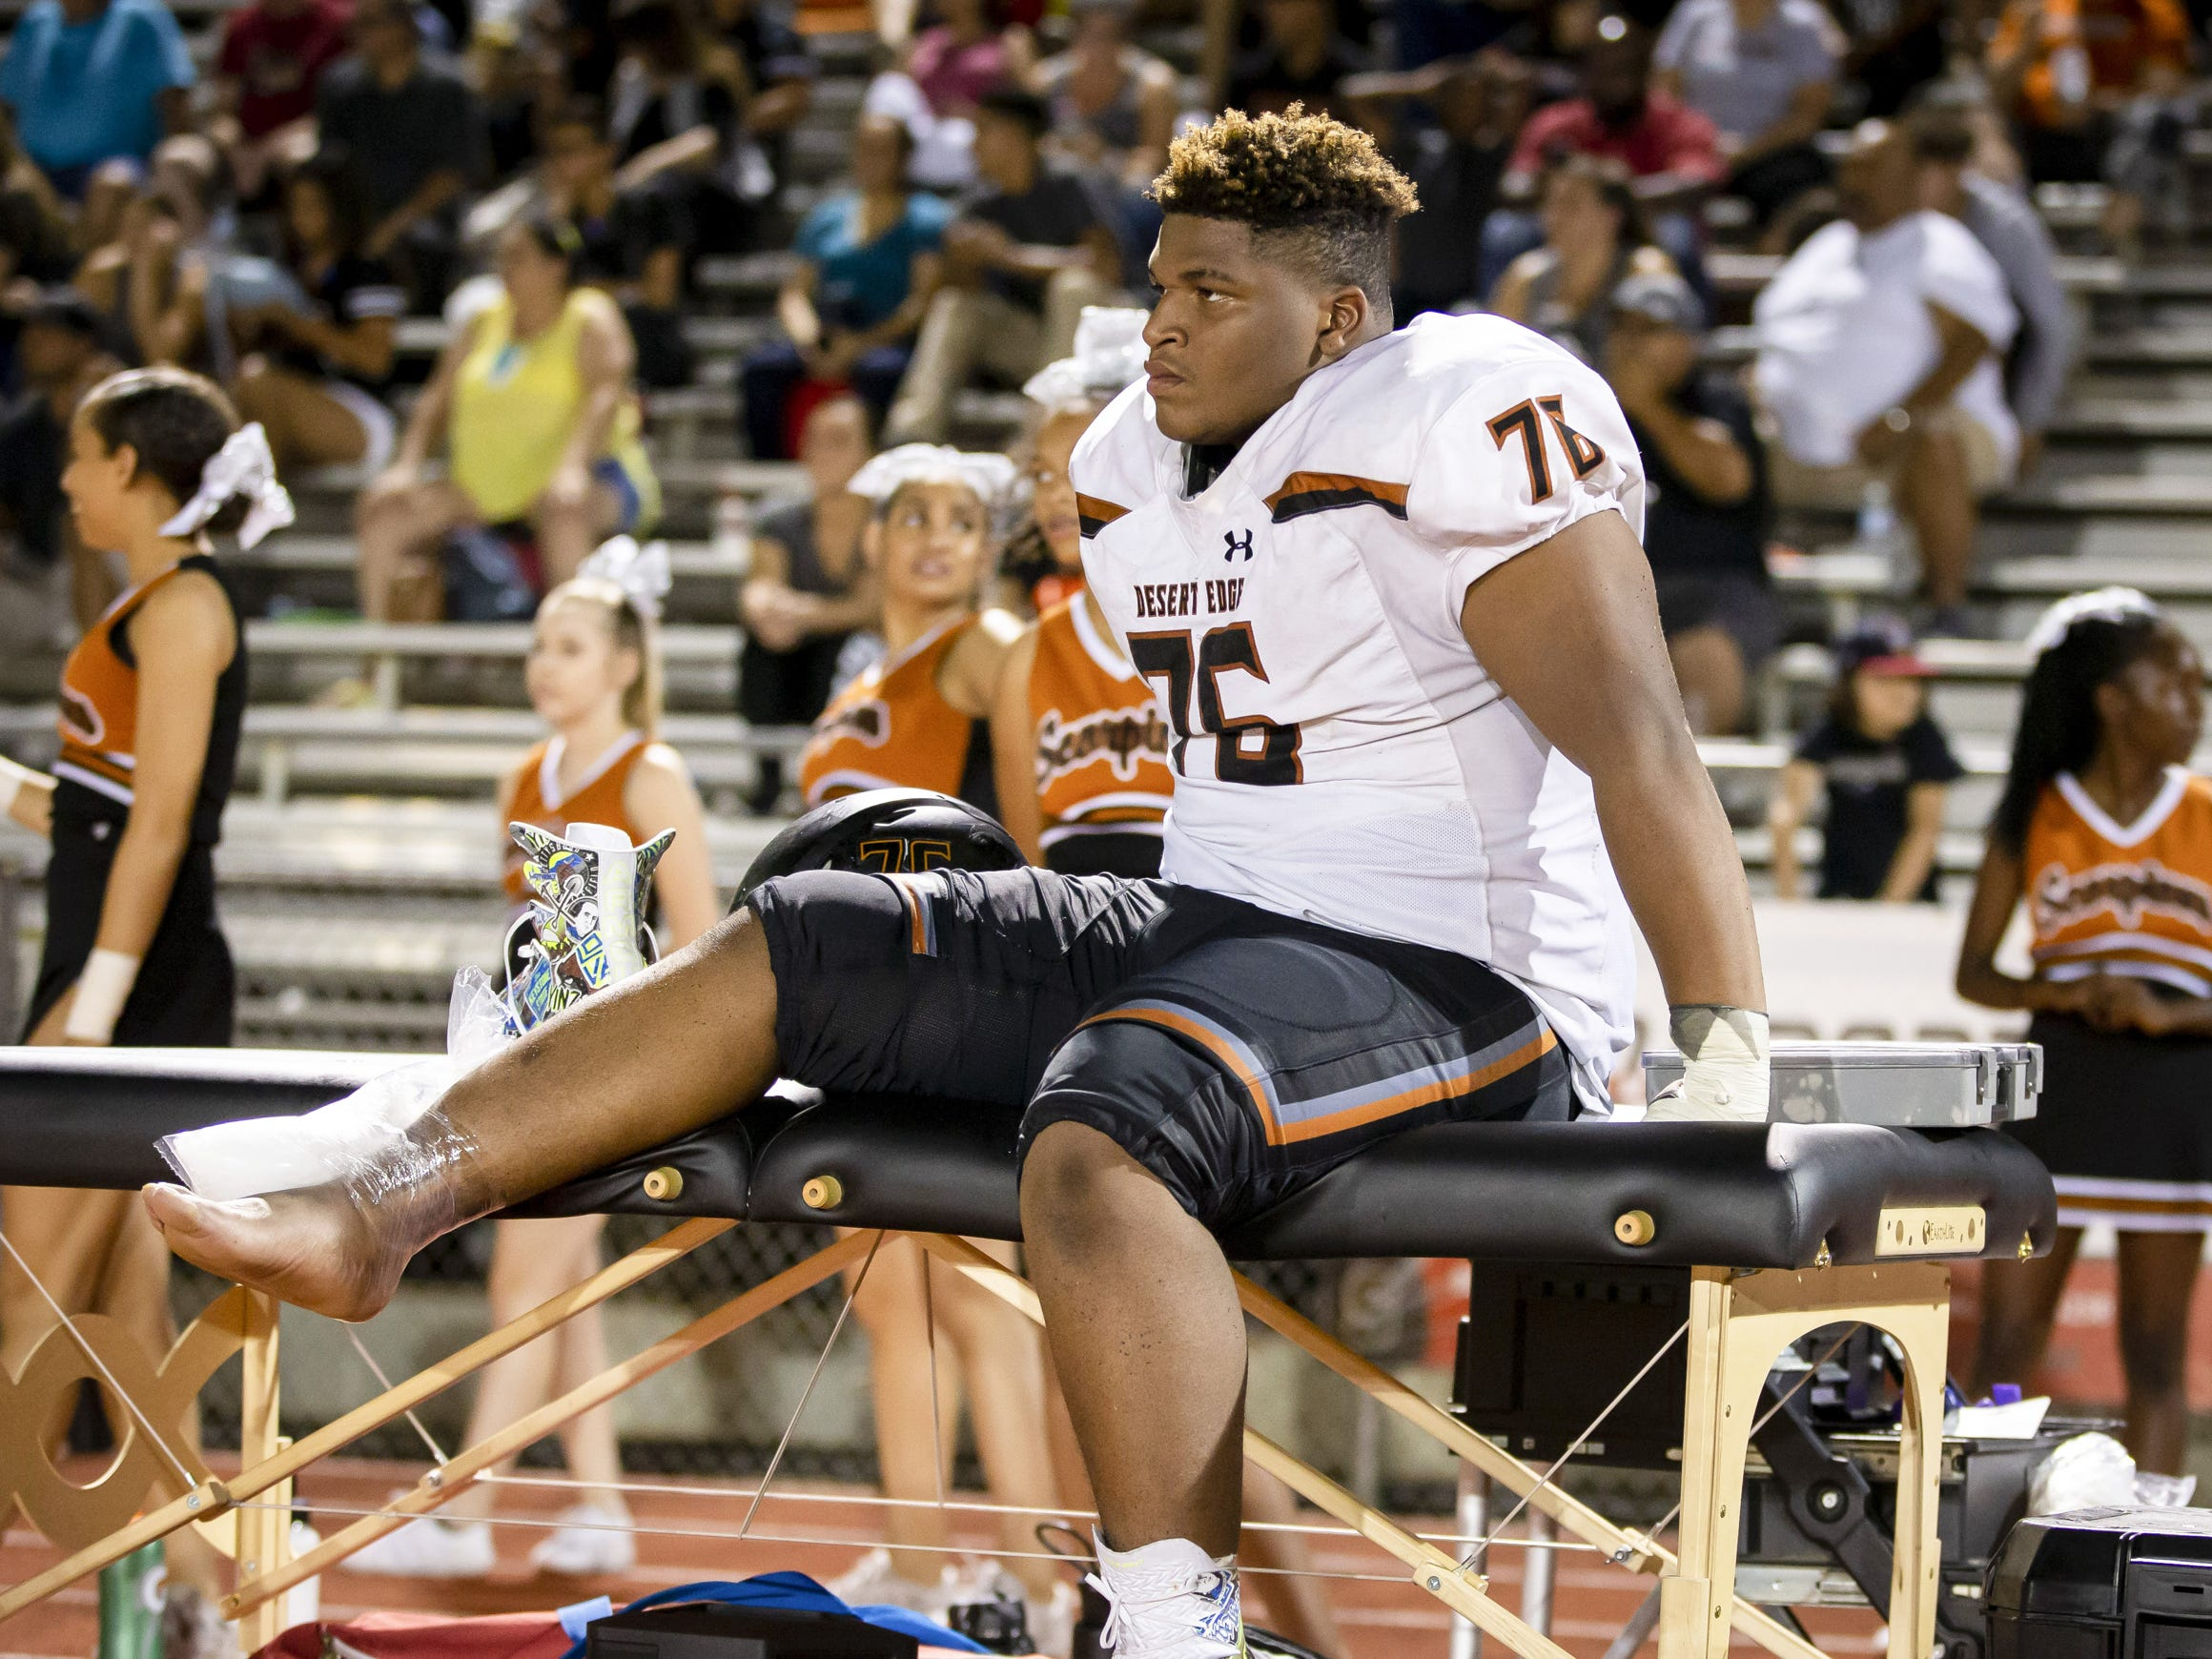 Freshman defensive tackle Isaiah Williams (76) of the Desert Edge Scorpions ices his ankle on the sidelines during the game against the Saguaro Sabercats at Saguaro High School on Friday, September 28, 2018 in Scottsdale, Arizona. #azhsfb